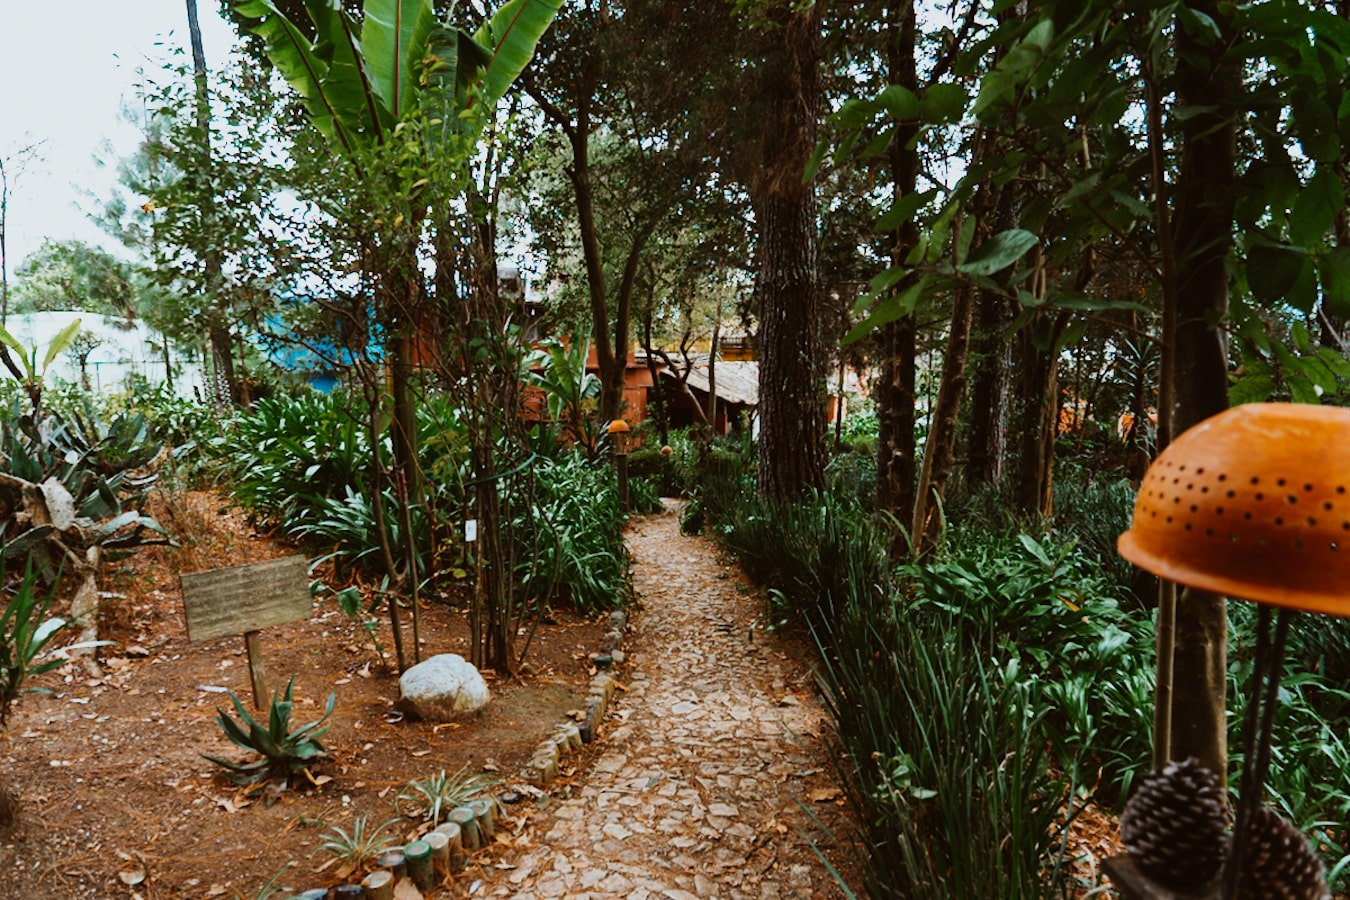 jungly Na Bolom Garden with stone pathway